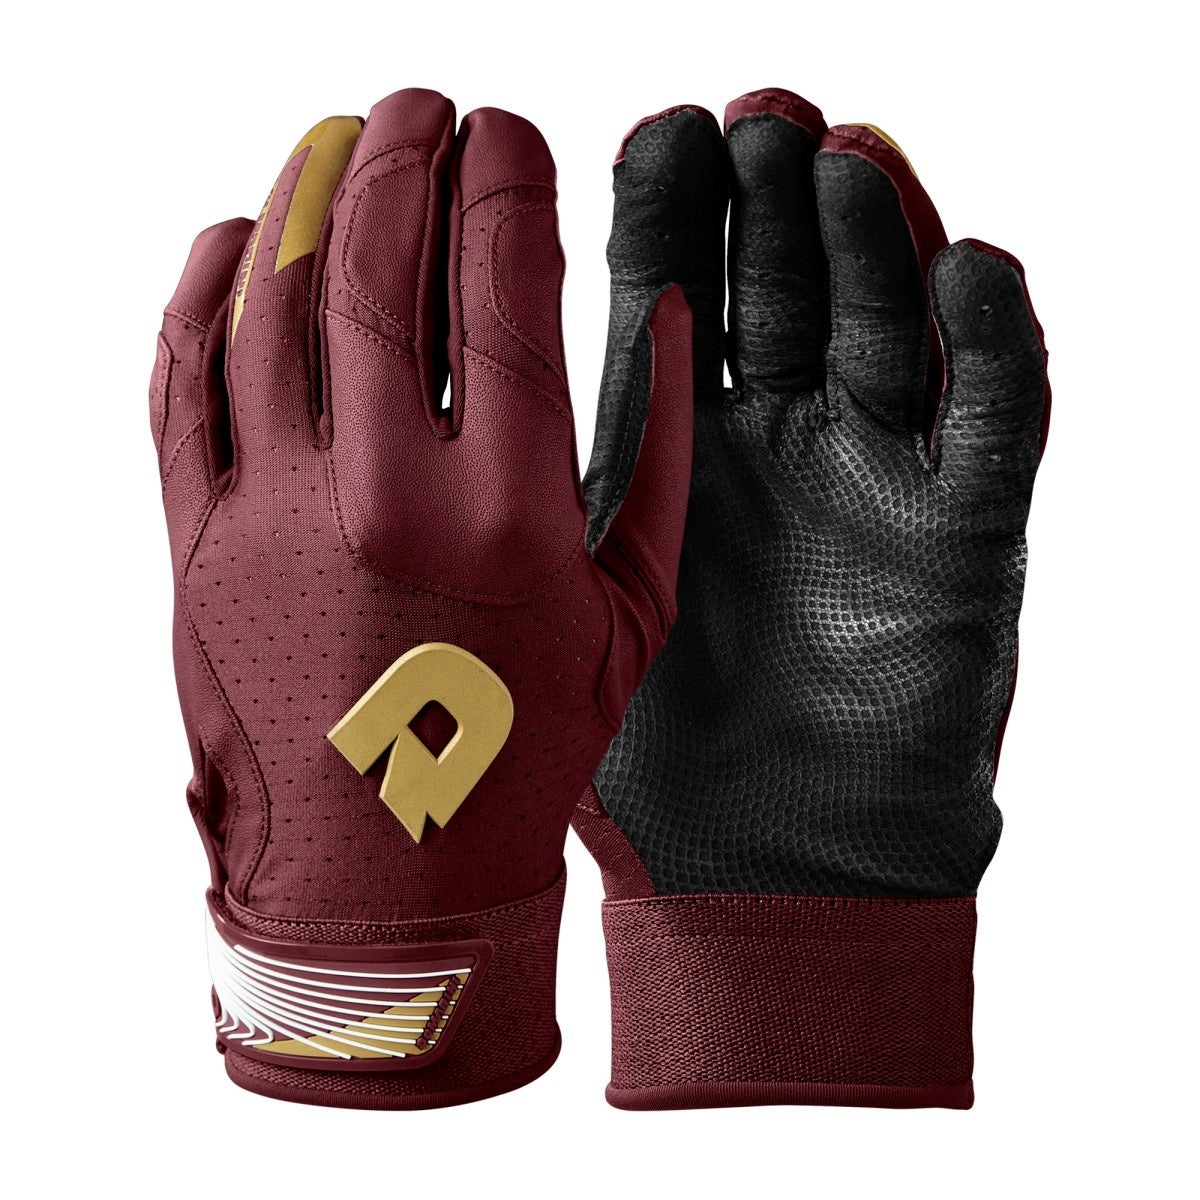 Adult DeMarini CF Batting Glove